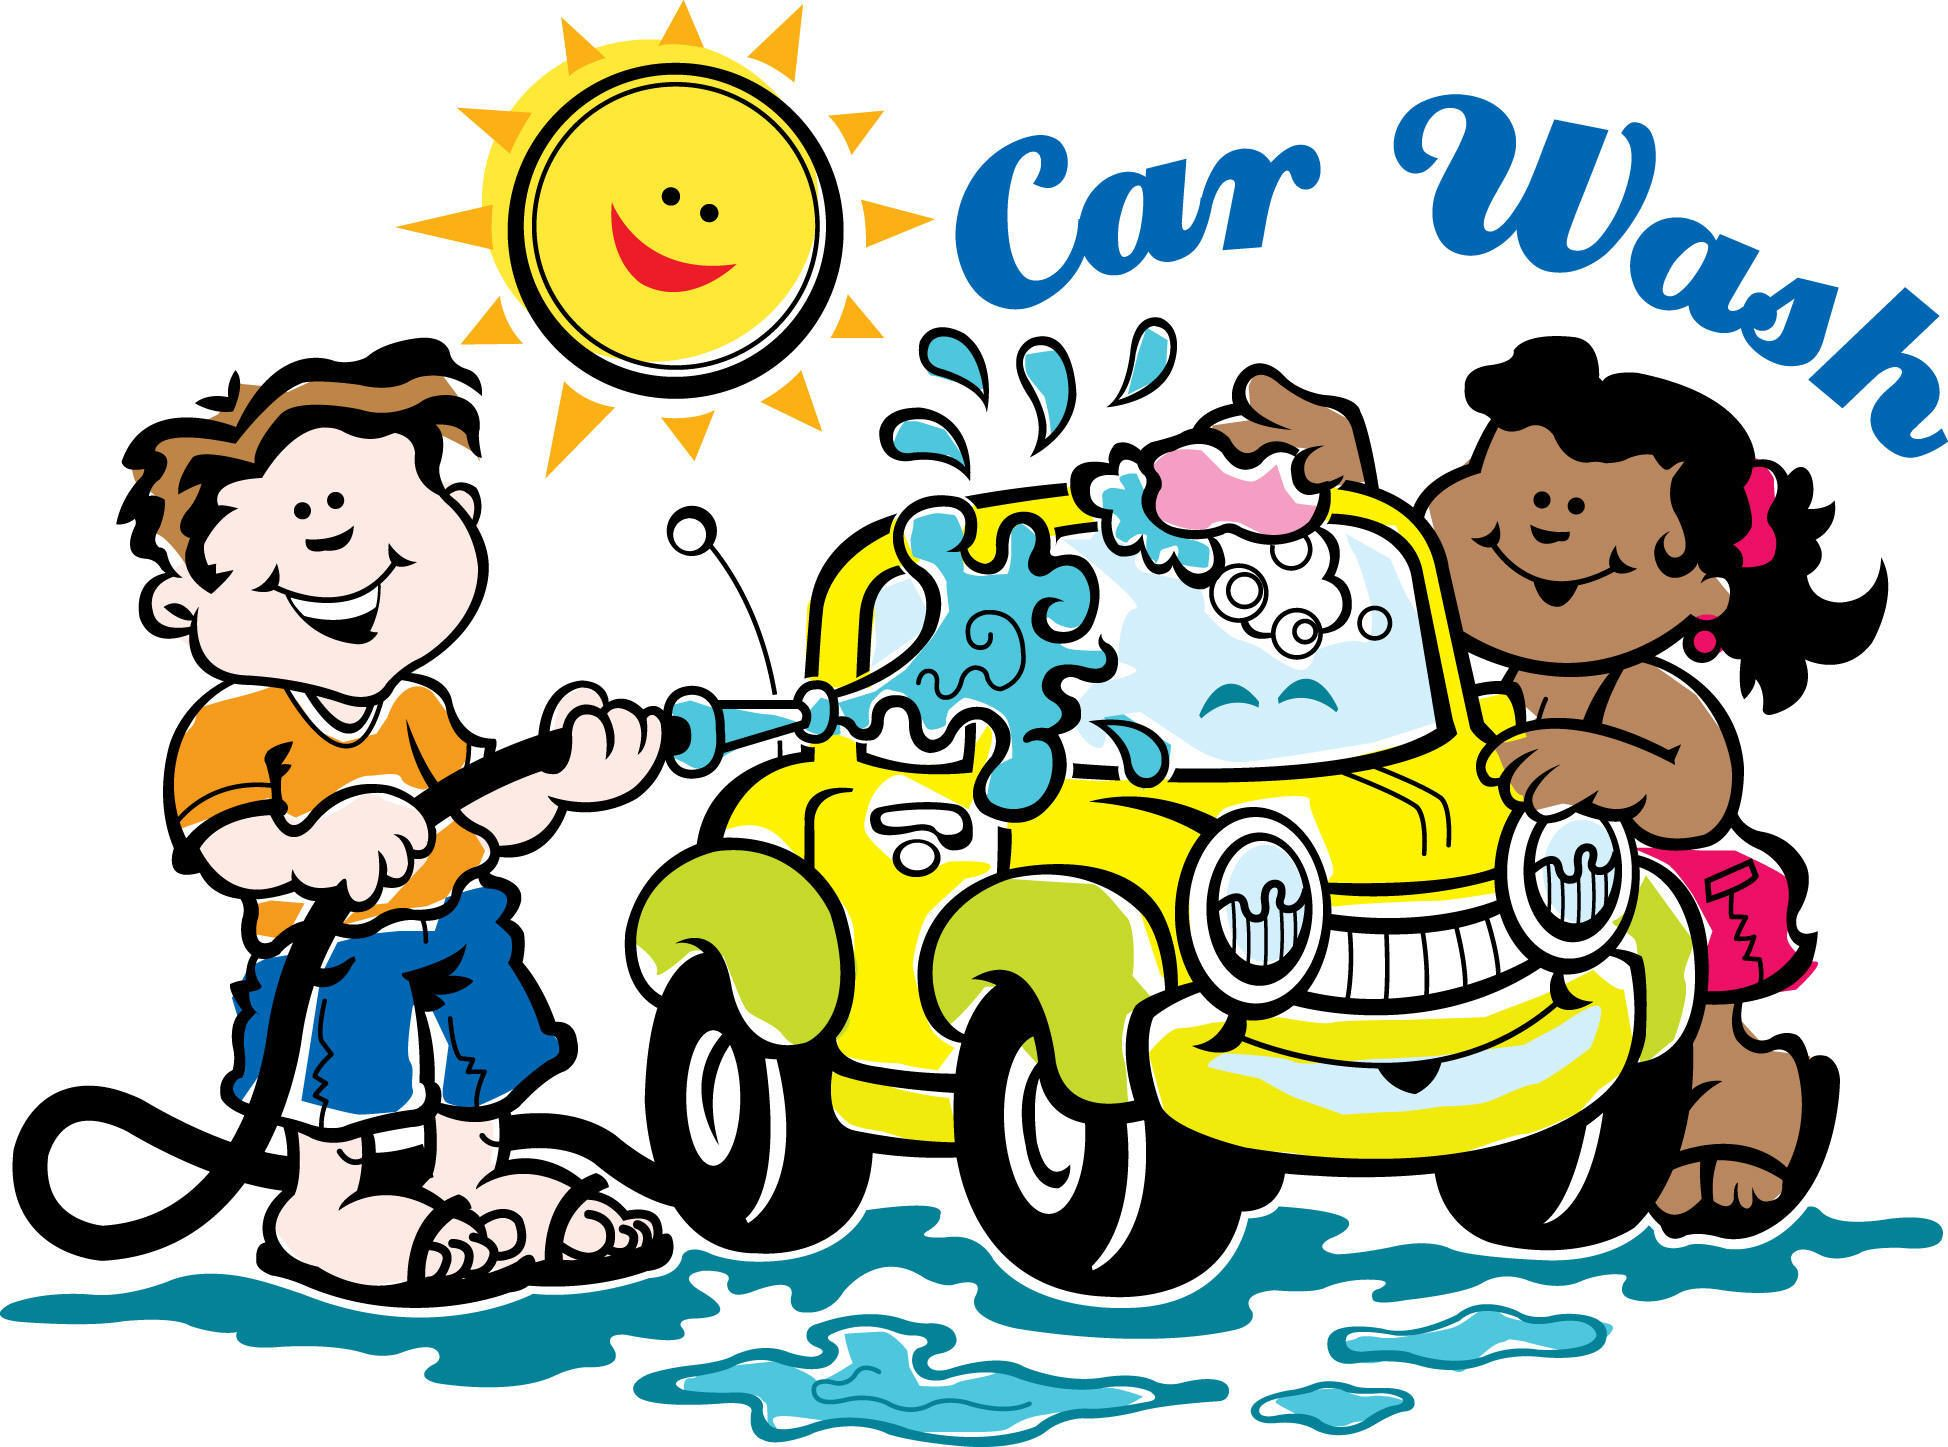 Free car wash pictures clipart jpg royalty free download free car wash clip art | Transportation | Car wash, Car cleaning ... jpg royalty free download